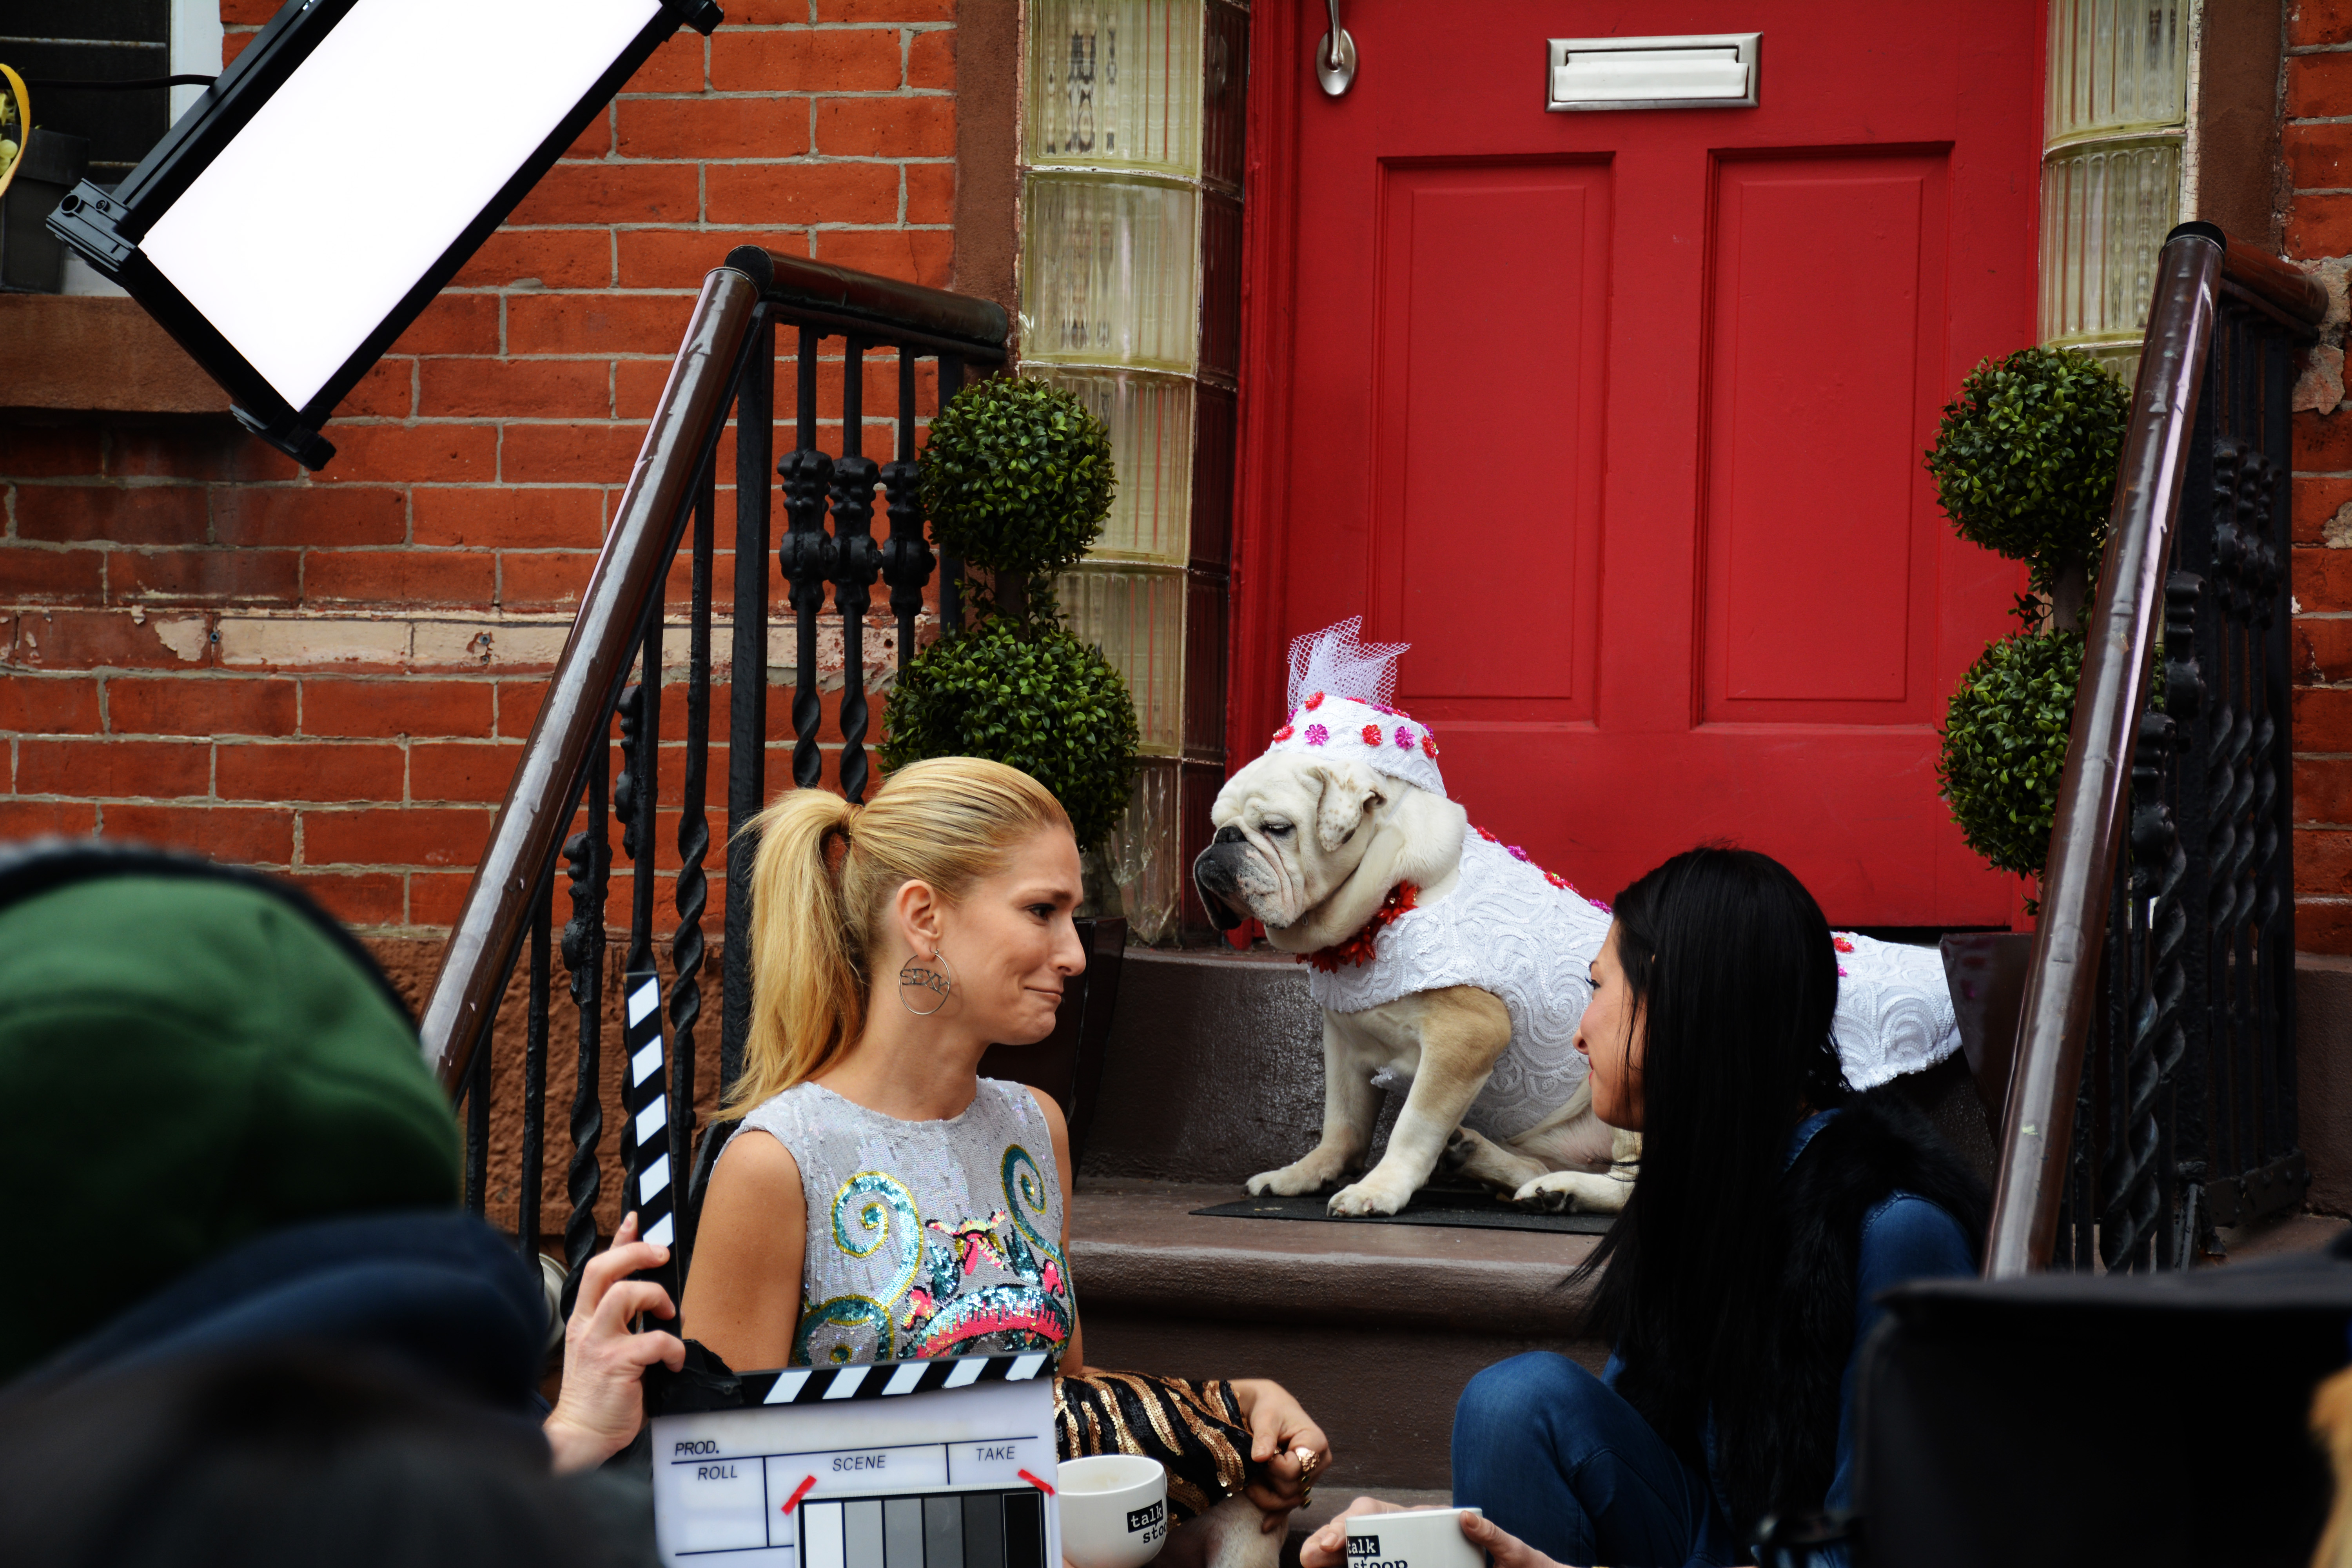 On the set of Talk Stoop with host Cat Grennleaf and guest Stacy London. Bulldog Gracie wearing Dog Fashion by Anthony Rubio Designs.